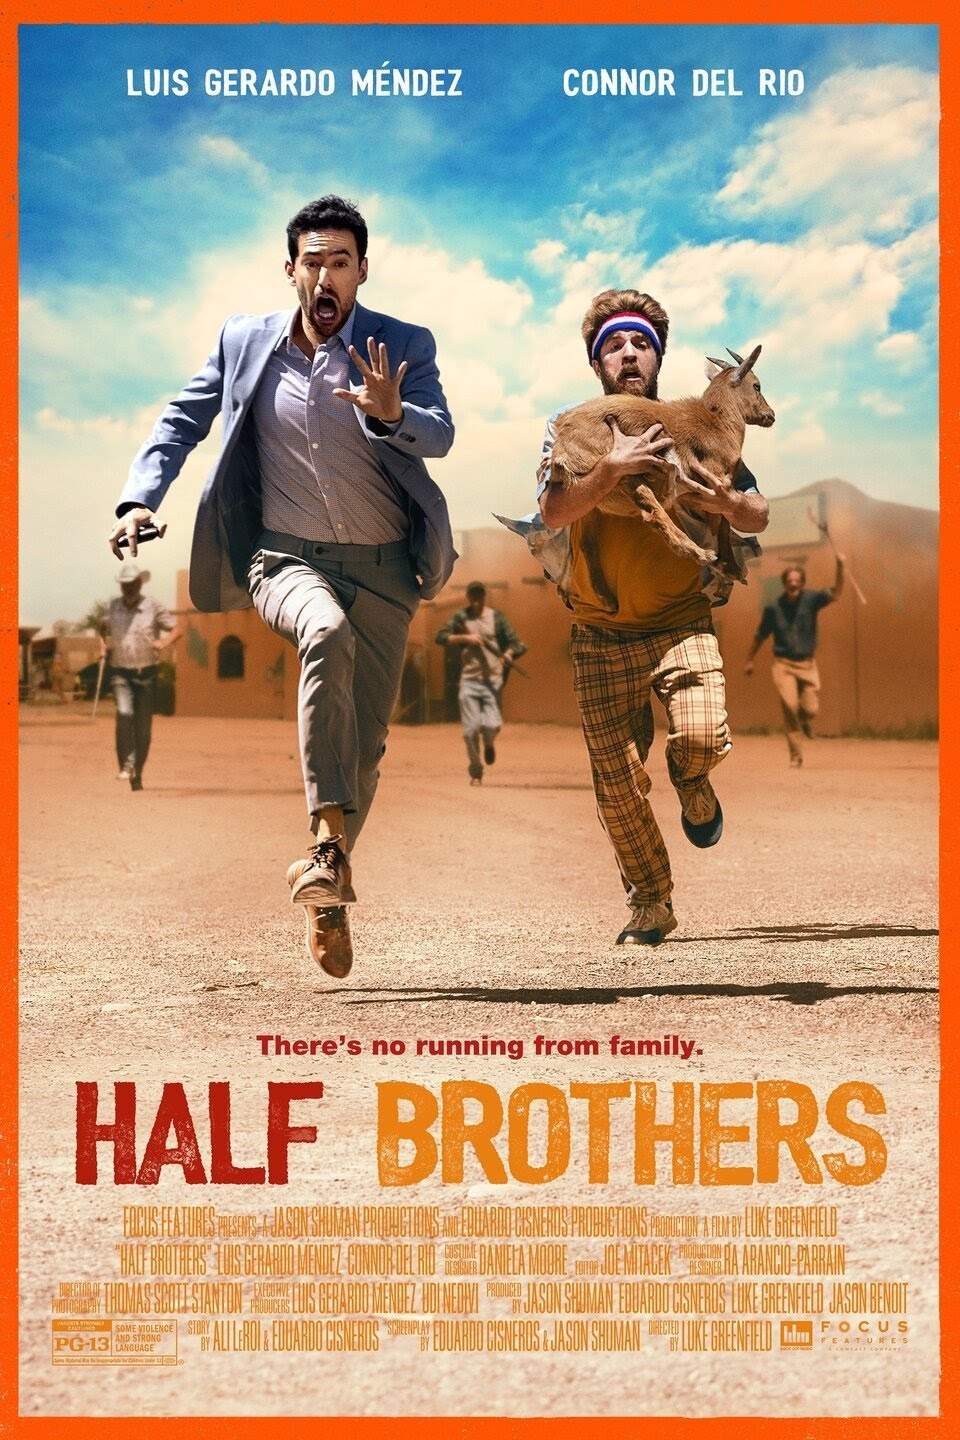 Movie poster image for HALF BROTHERS